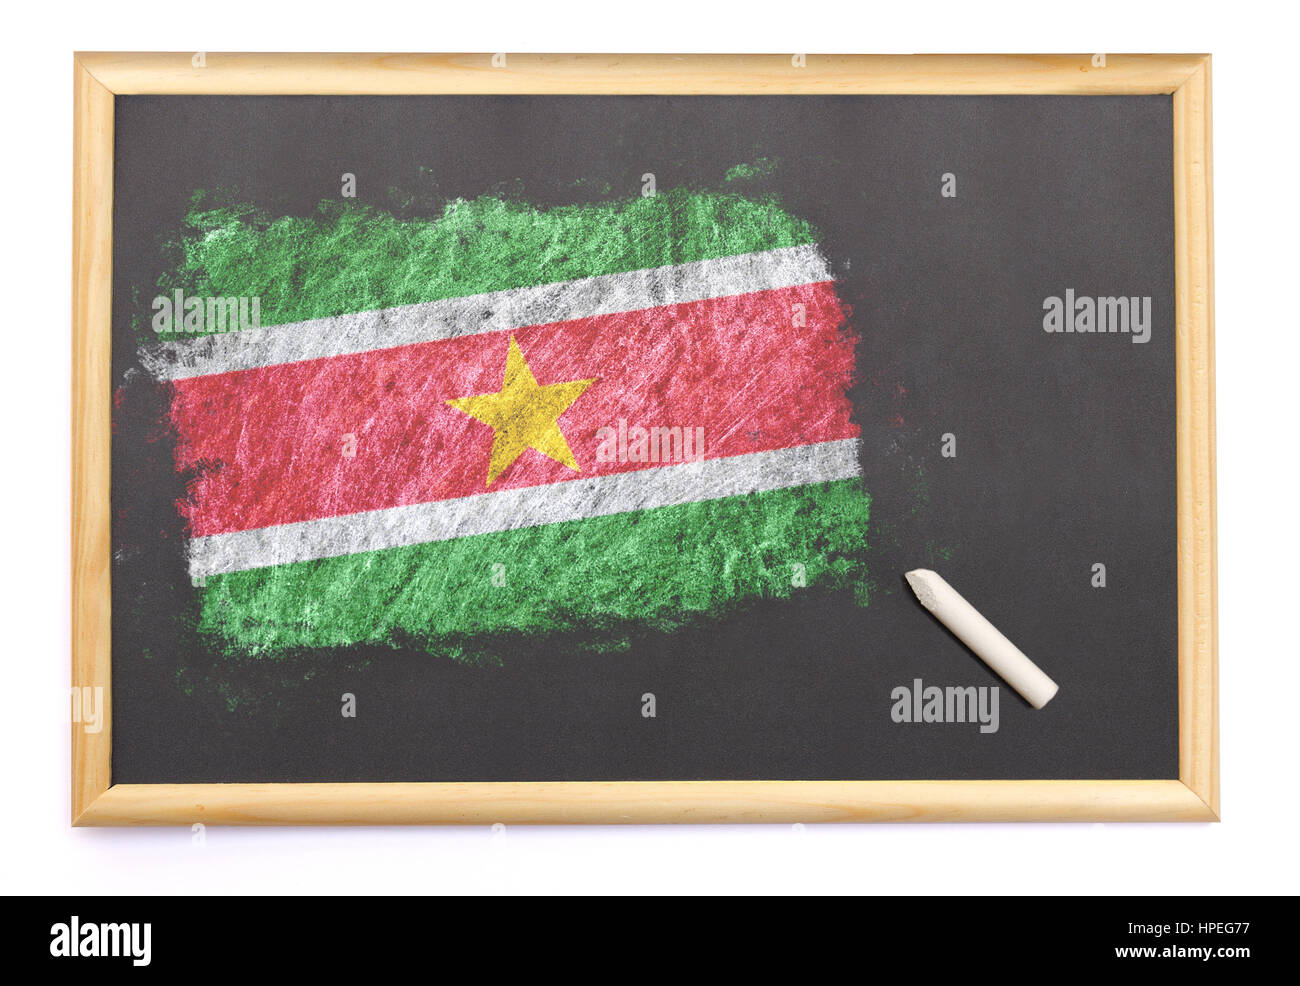 Blackboard with the national flag of Suriname drawn on and a chalk.(series) - Stock Image